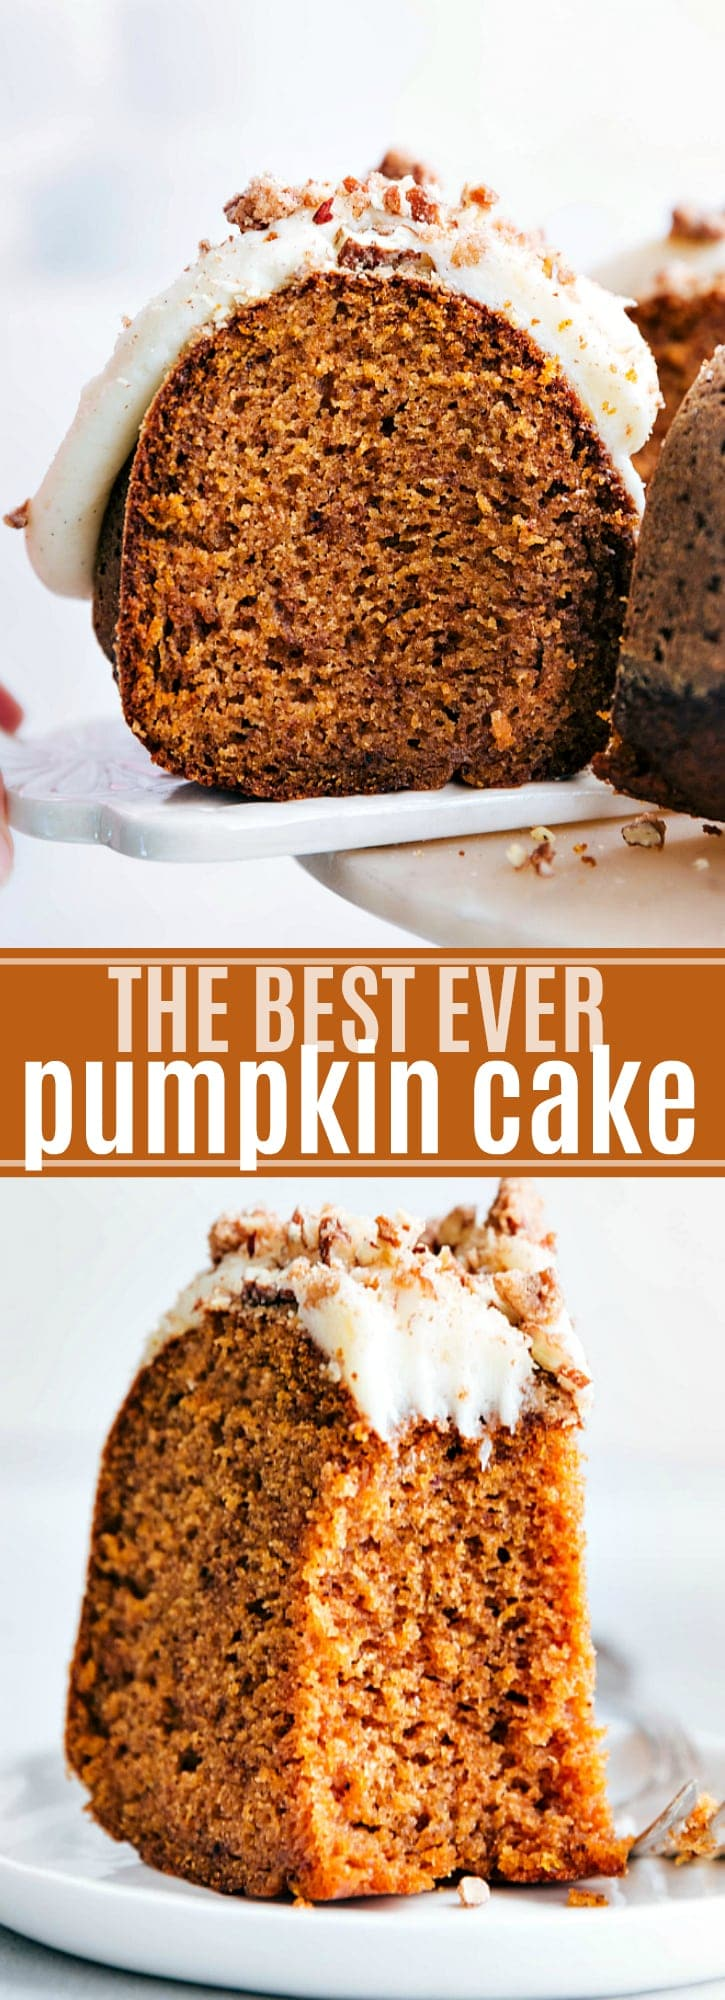 The BEST ever moist and perfectly spiced pumpkin cake with a luscious cream cheese frosting via chelseasmessyapron.com #bundt #cake #pumpkin #cream #cheese #frosting #best #ever #dessert #fall #thanksgiving #bestever #pecan #nut #easy #failproof #tested #healthy #healthier #tried #true